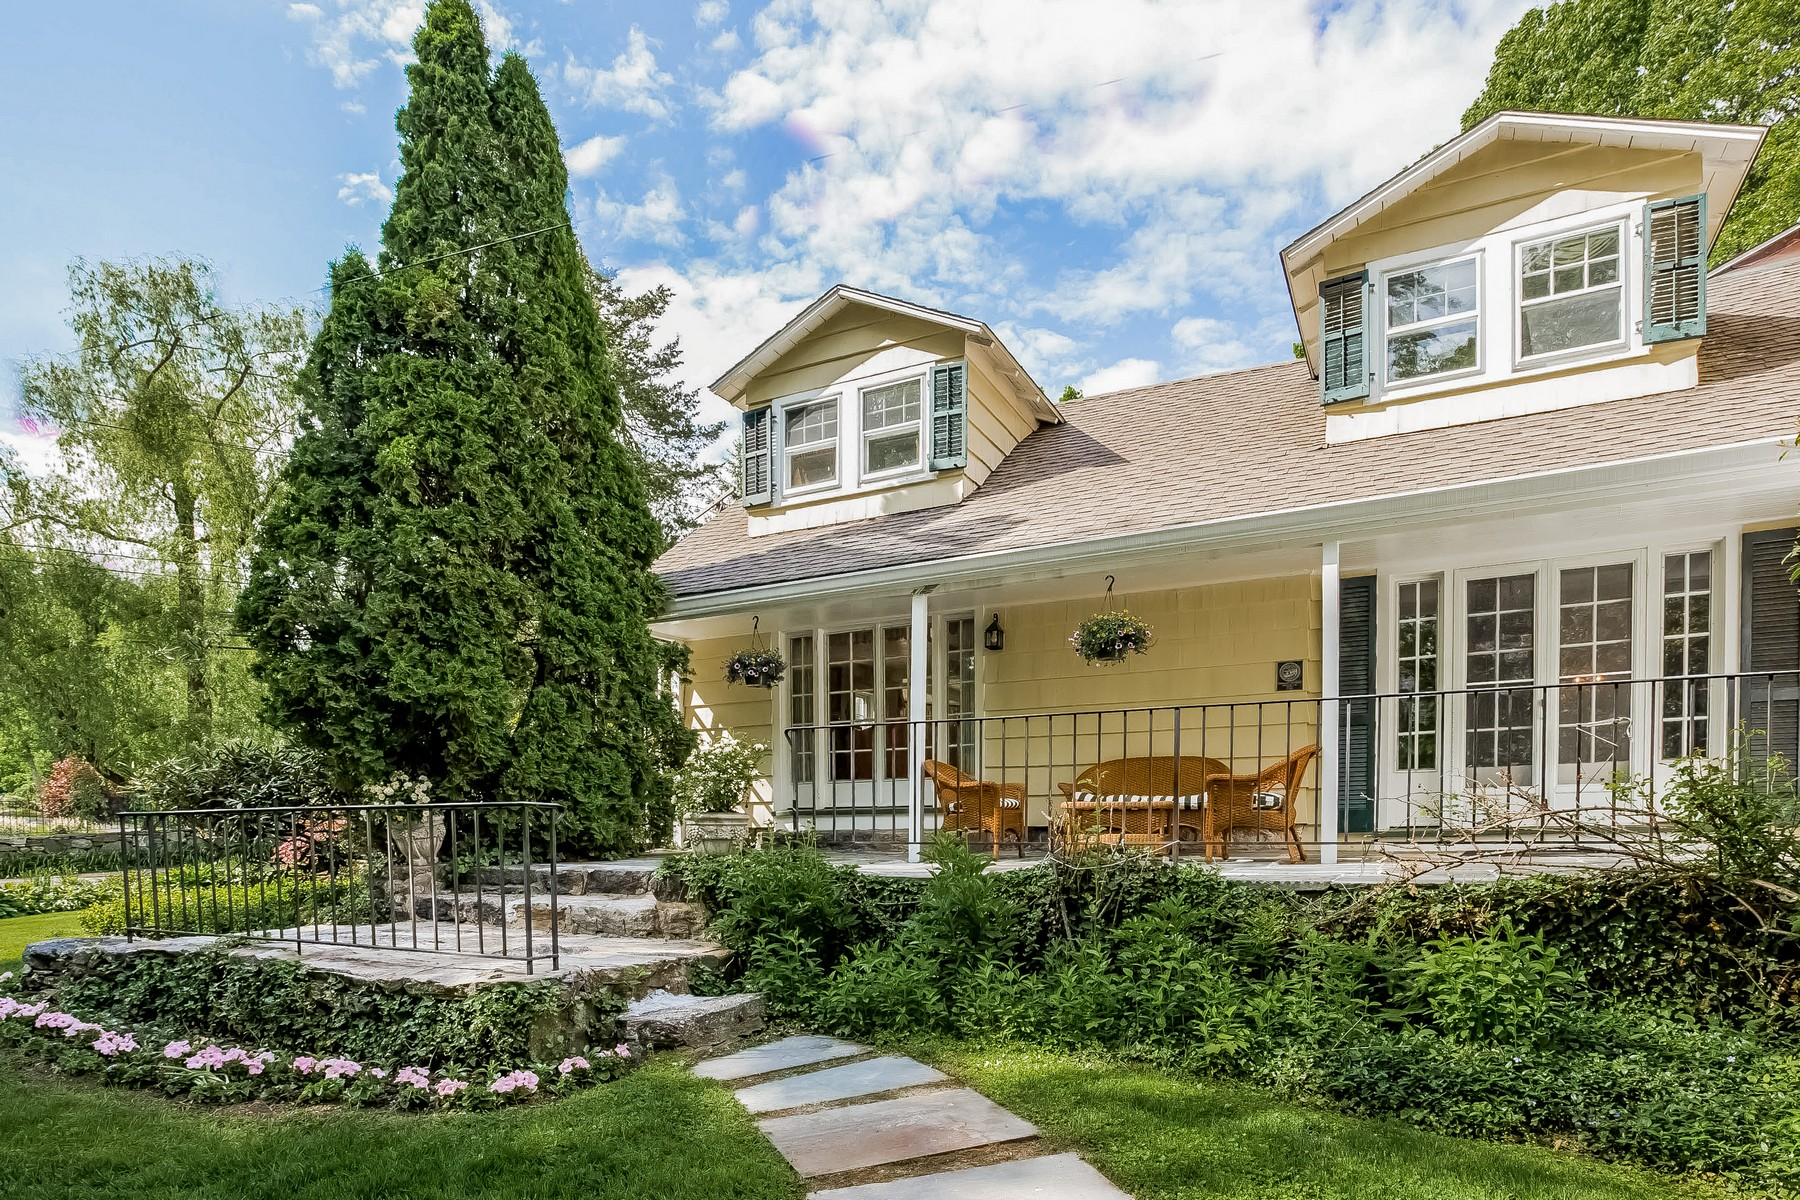 Single Family Home for Sale at Beautifully Updated 5 Bedroom Greenwich Antique 116 Pecksland Road Greenwich, Connecticut 06831 United States